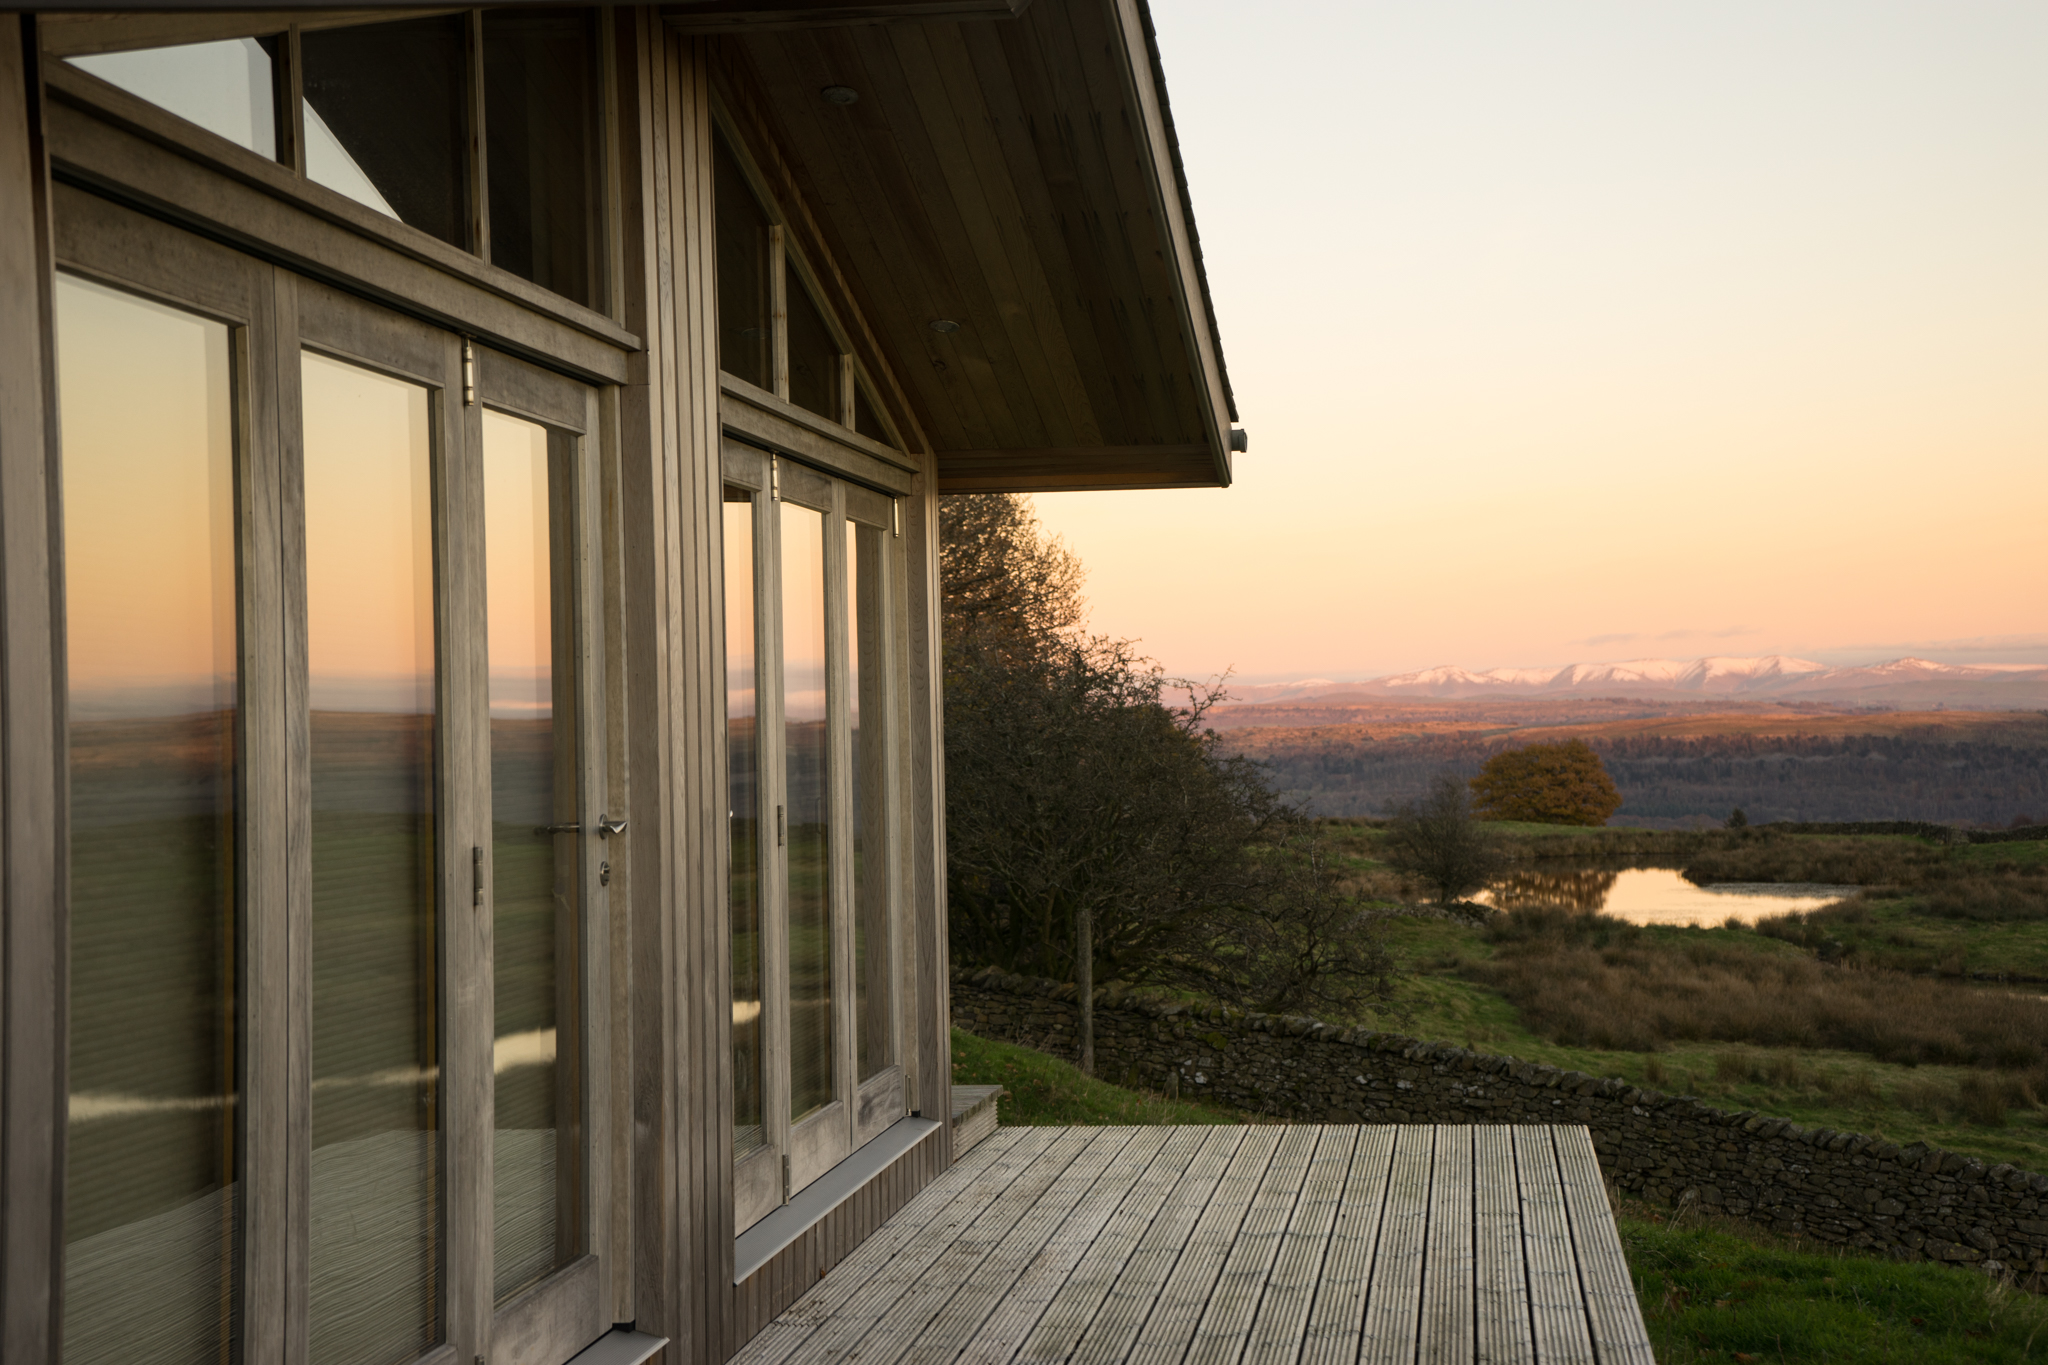 Expansive vistas - Expansive vistas while enjoying sunrise over the Yorkshire Dales and sunsets over Morecambe Bay.